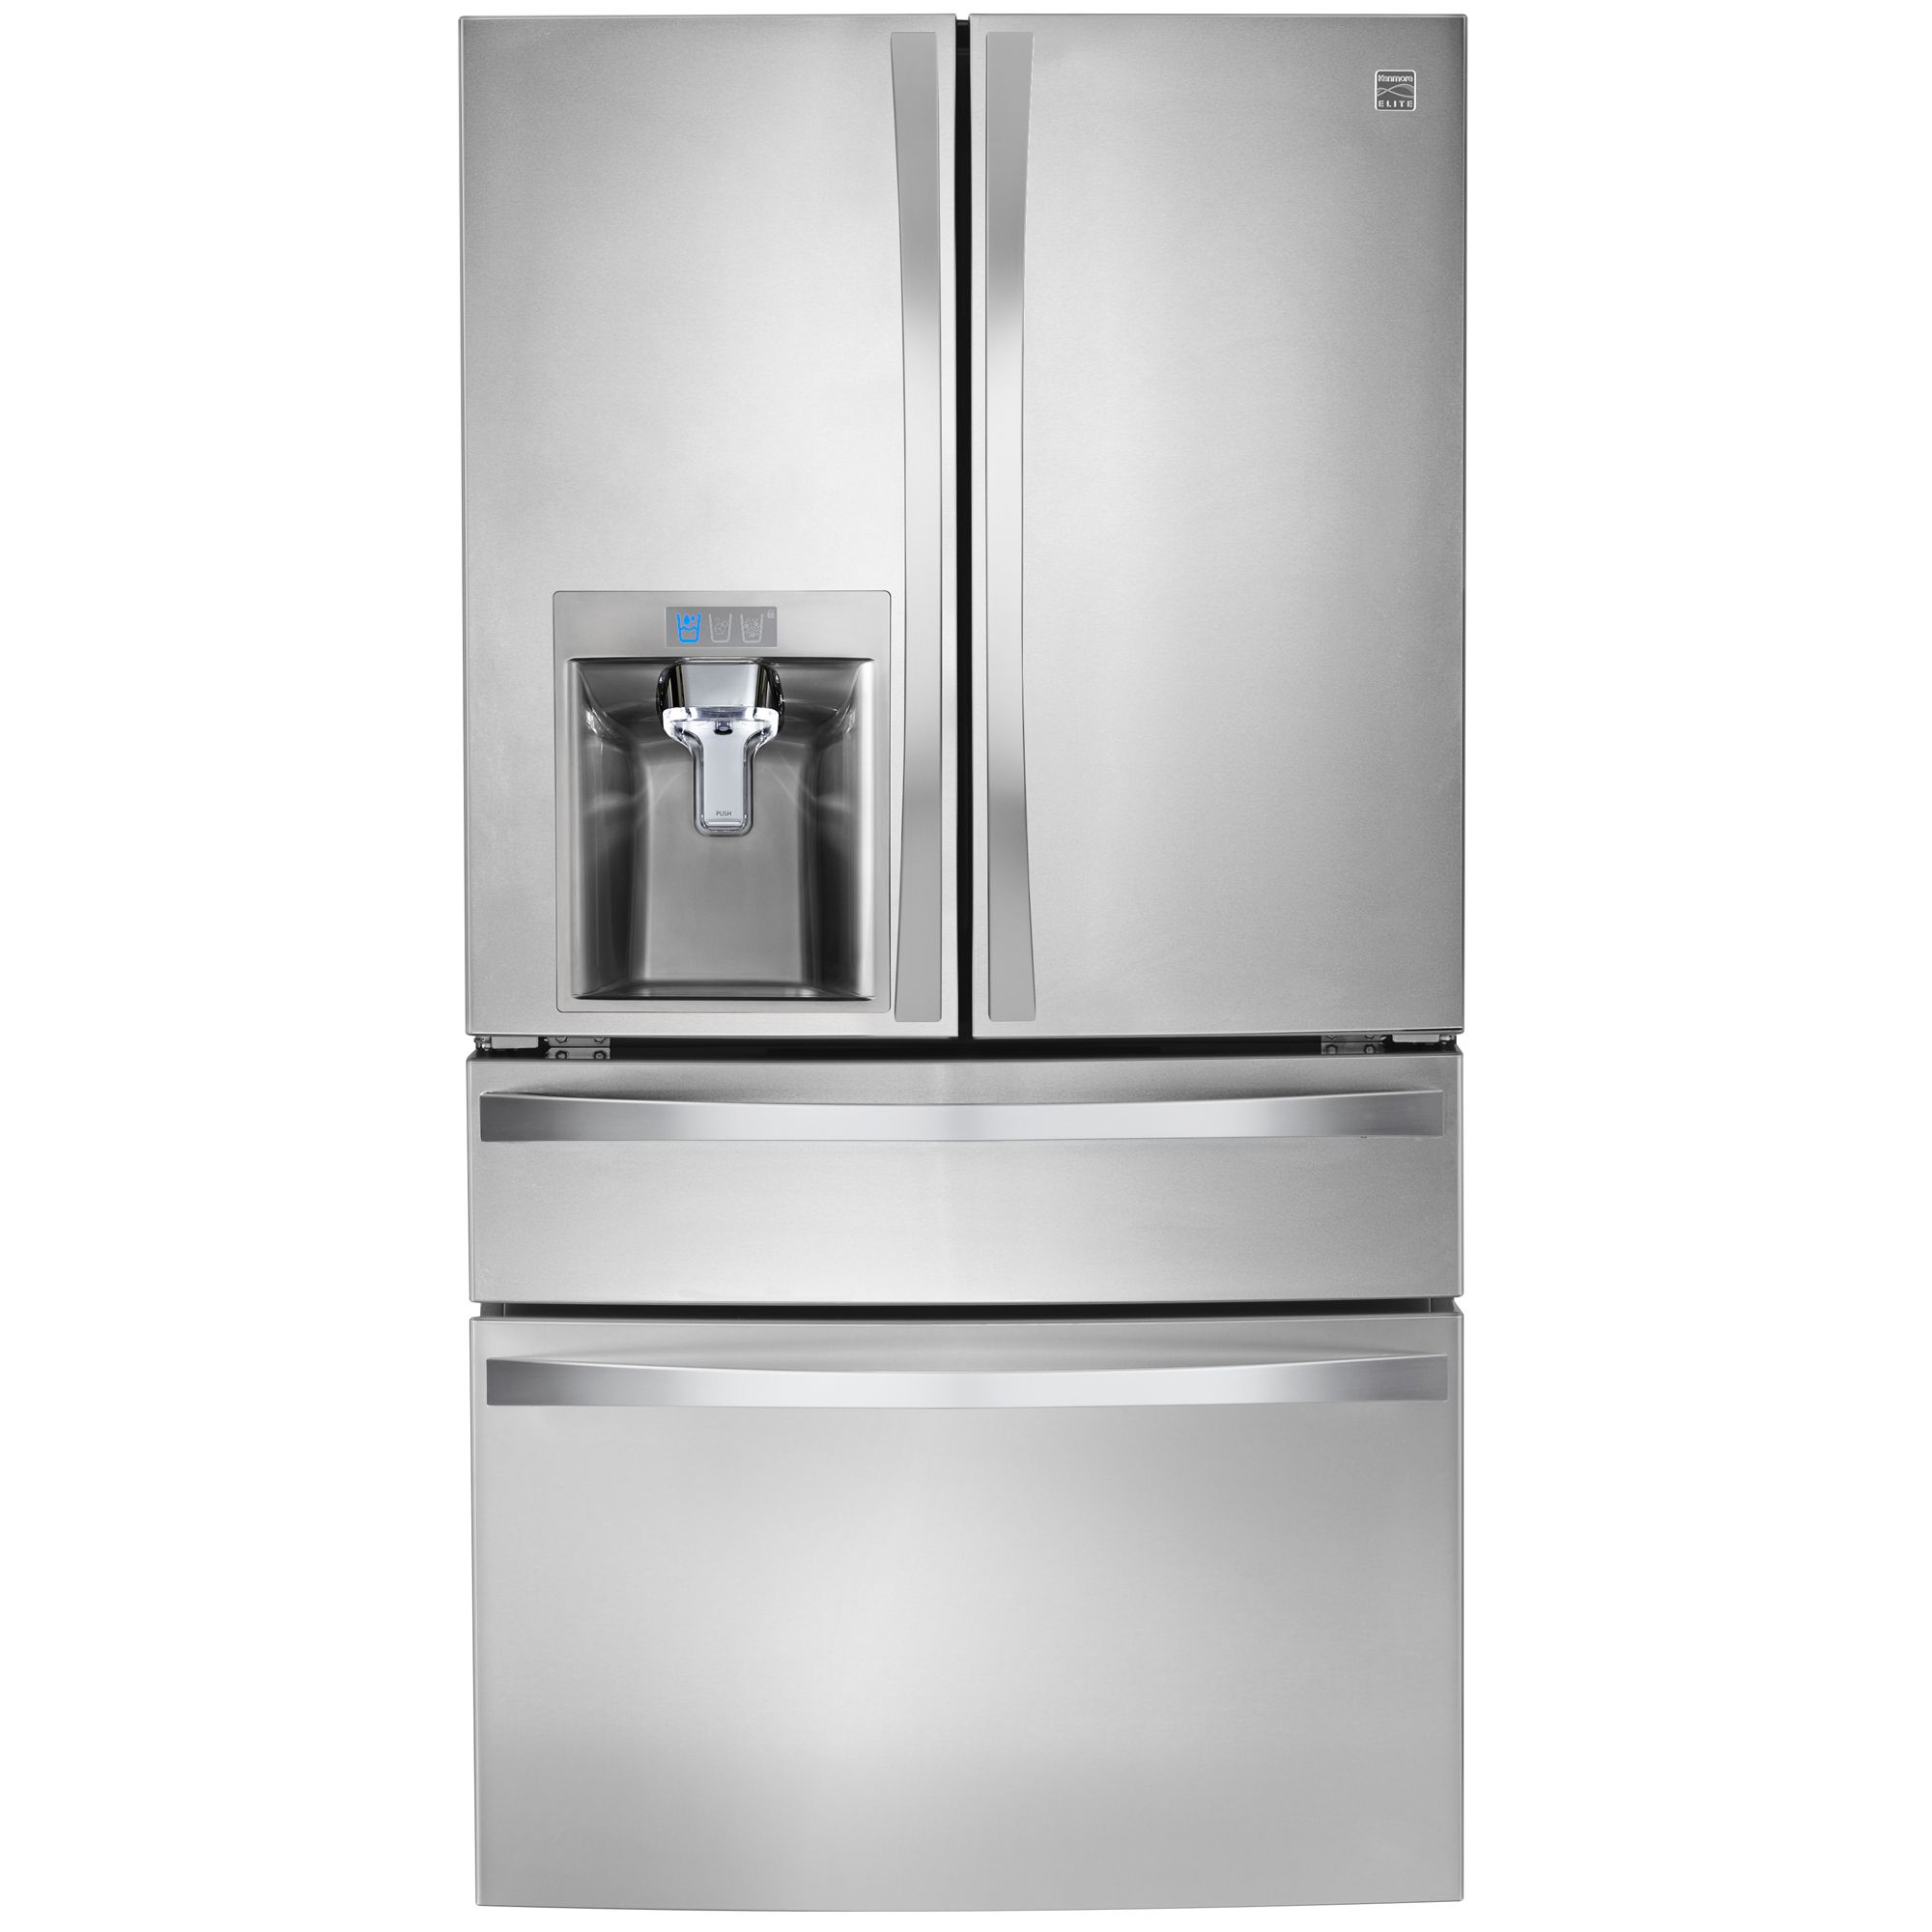 ifa refrigerators efficient doors model lg latest door showcases energy of at premium multi range refrigerator